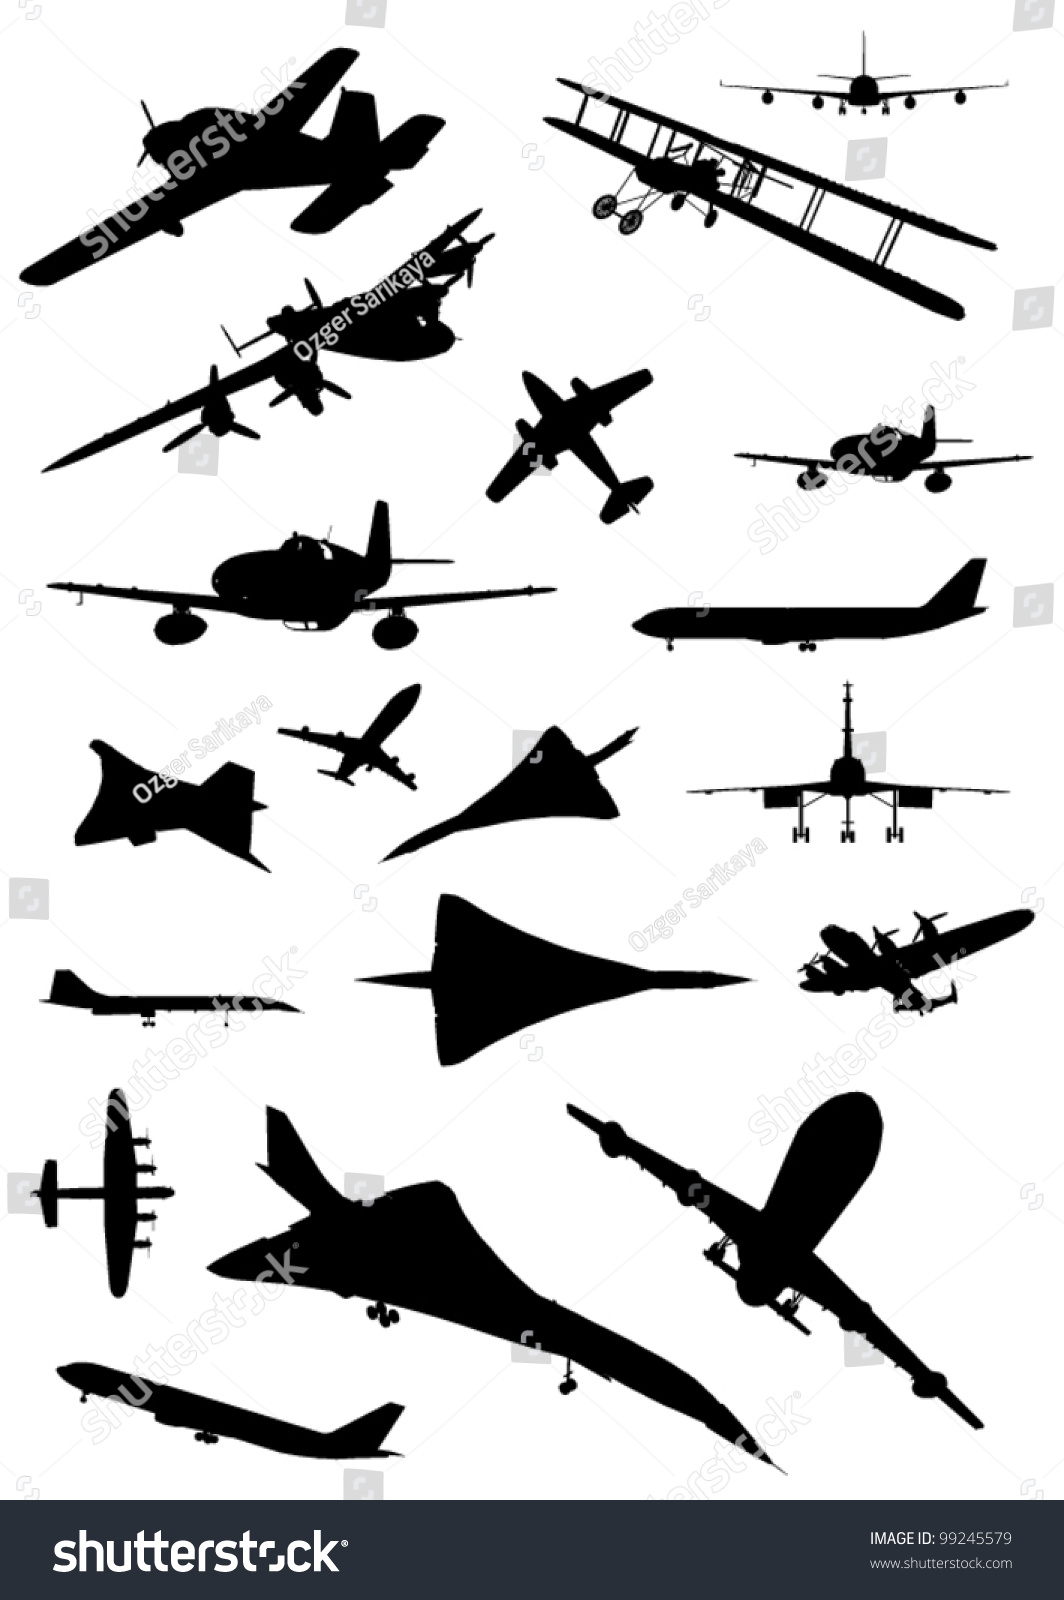 Silhouette aircraft set vector 01 - Vector Silhouettes free download